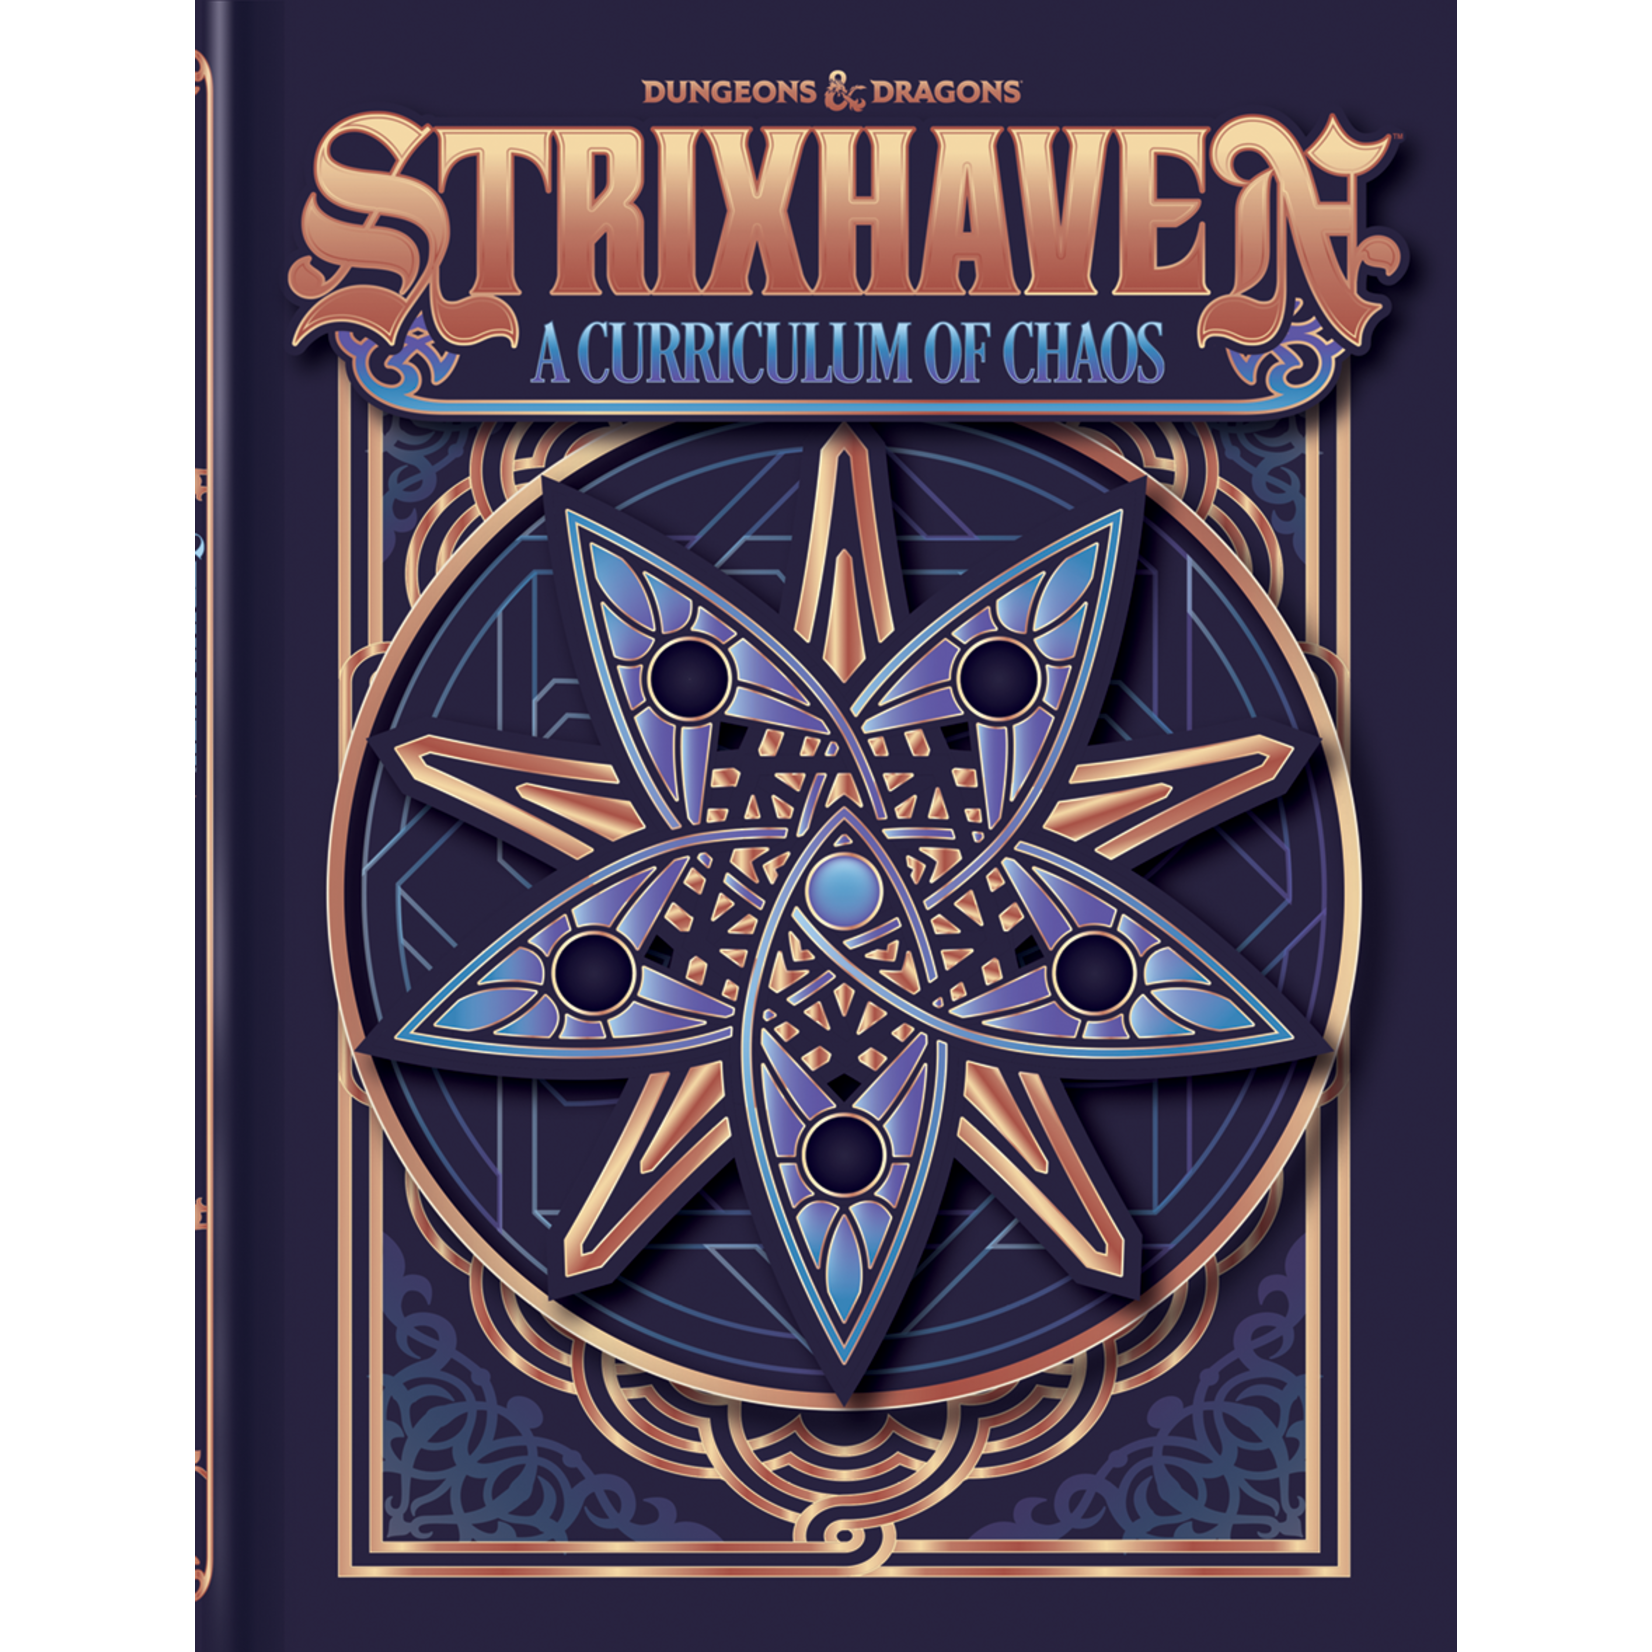 Dungeons & Dragons Dungeons & Dragons 5th Edition: Strixhaven: A Curriculum of Chaos (Alternate-Art Cover)